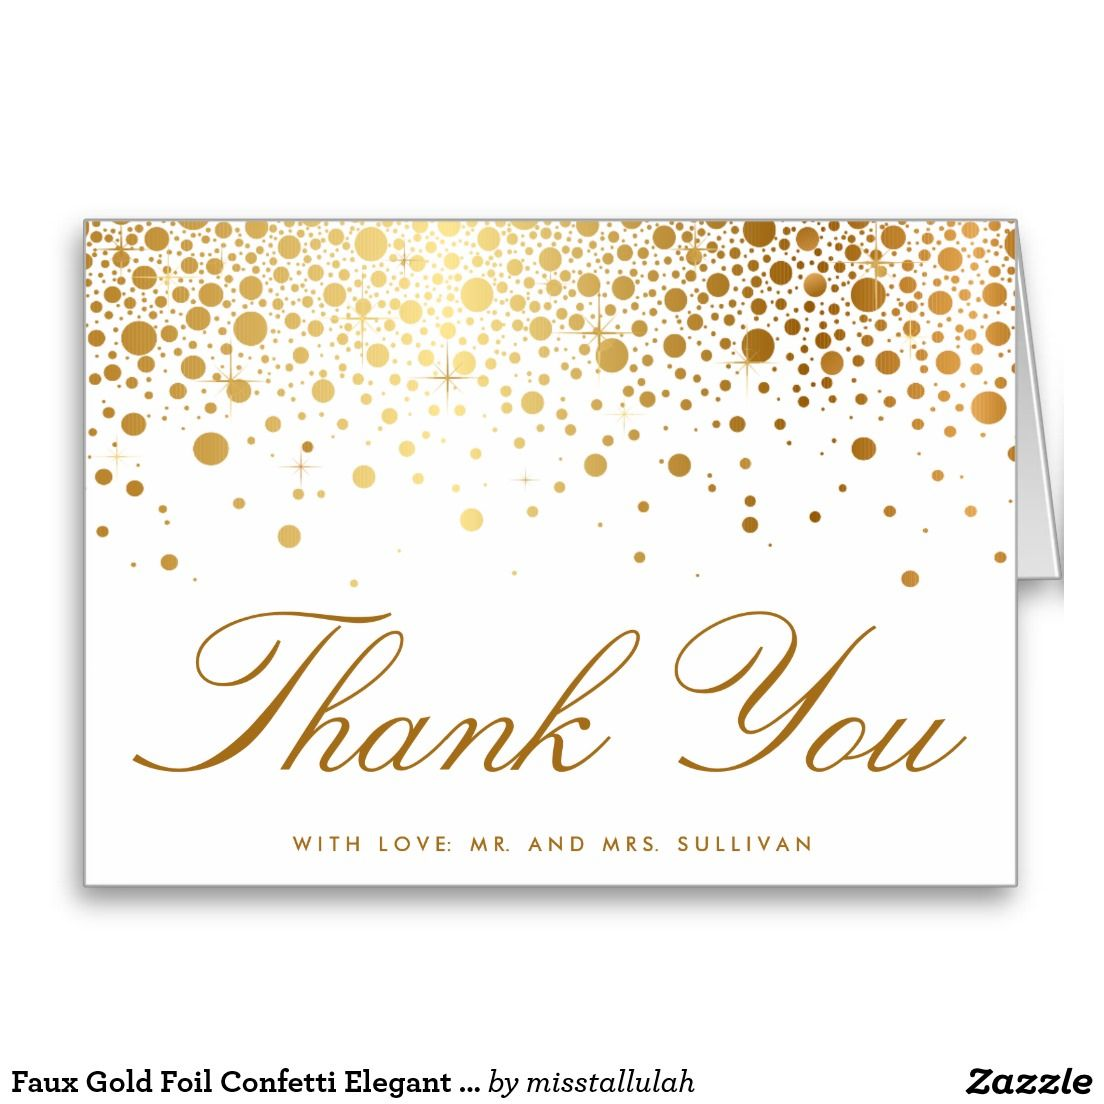 Faux gold foil confetti elegant thank you card greeting cards faux gold foil confetti elegant thank you card kristyandbryce Images